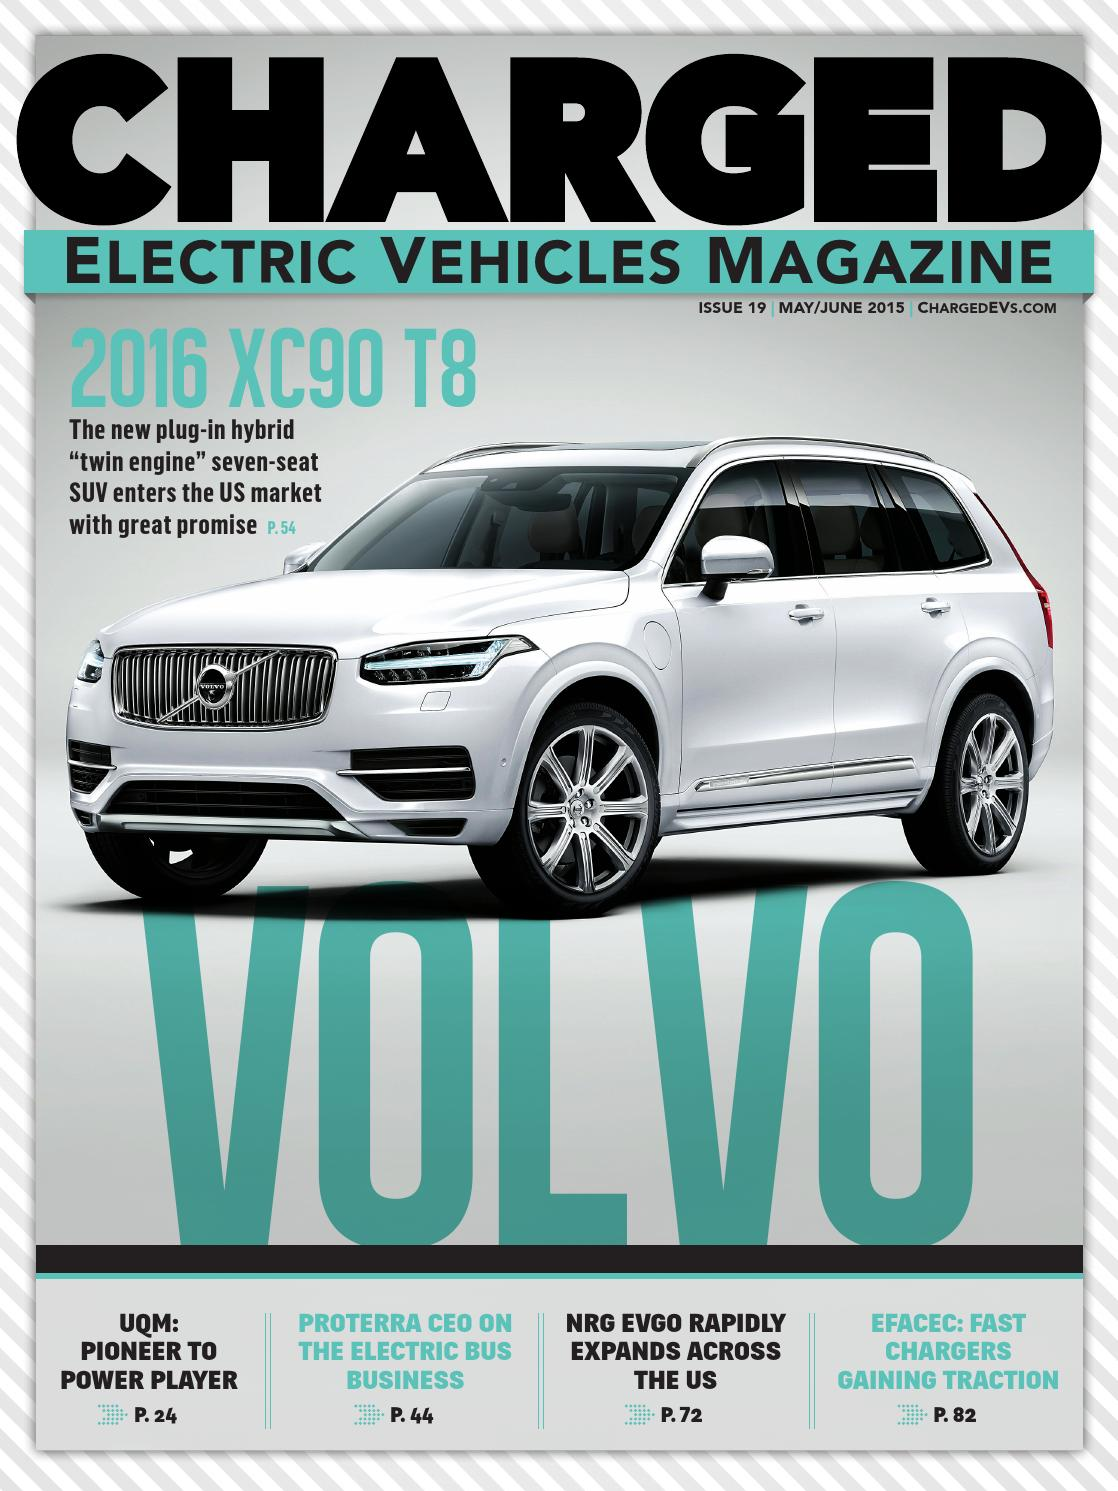 Charged Electric Vehicles Magazine Iss 19 May Jun 2015 By Solar Cell Powered Supercapacitor Charger With Strange Output Voltage Vehilces Issuu